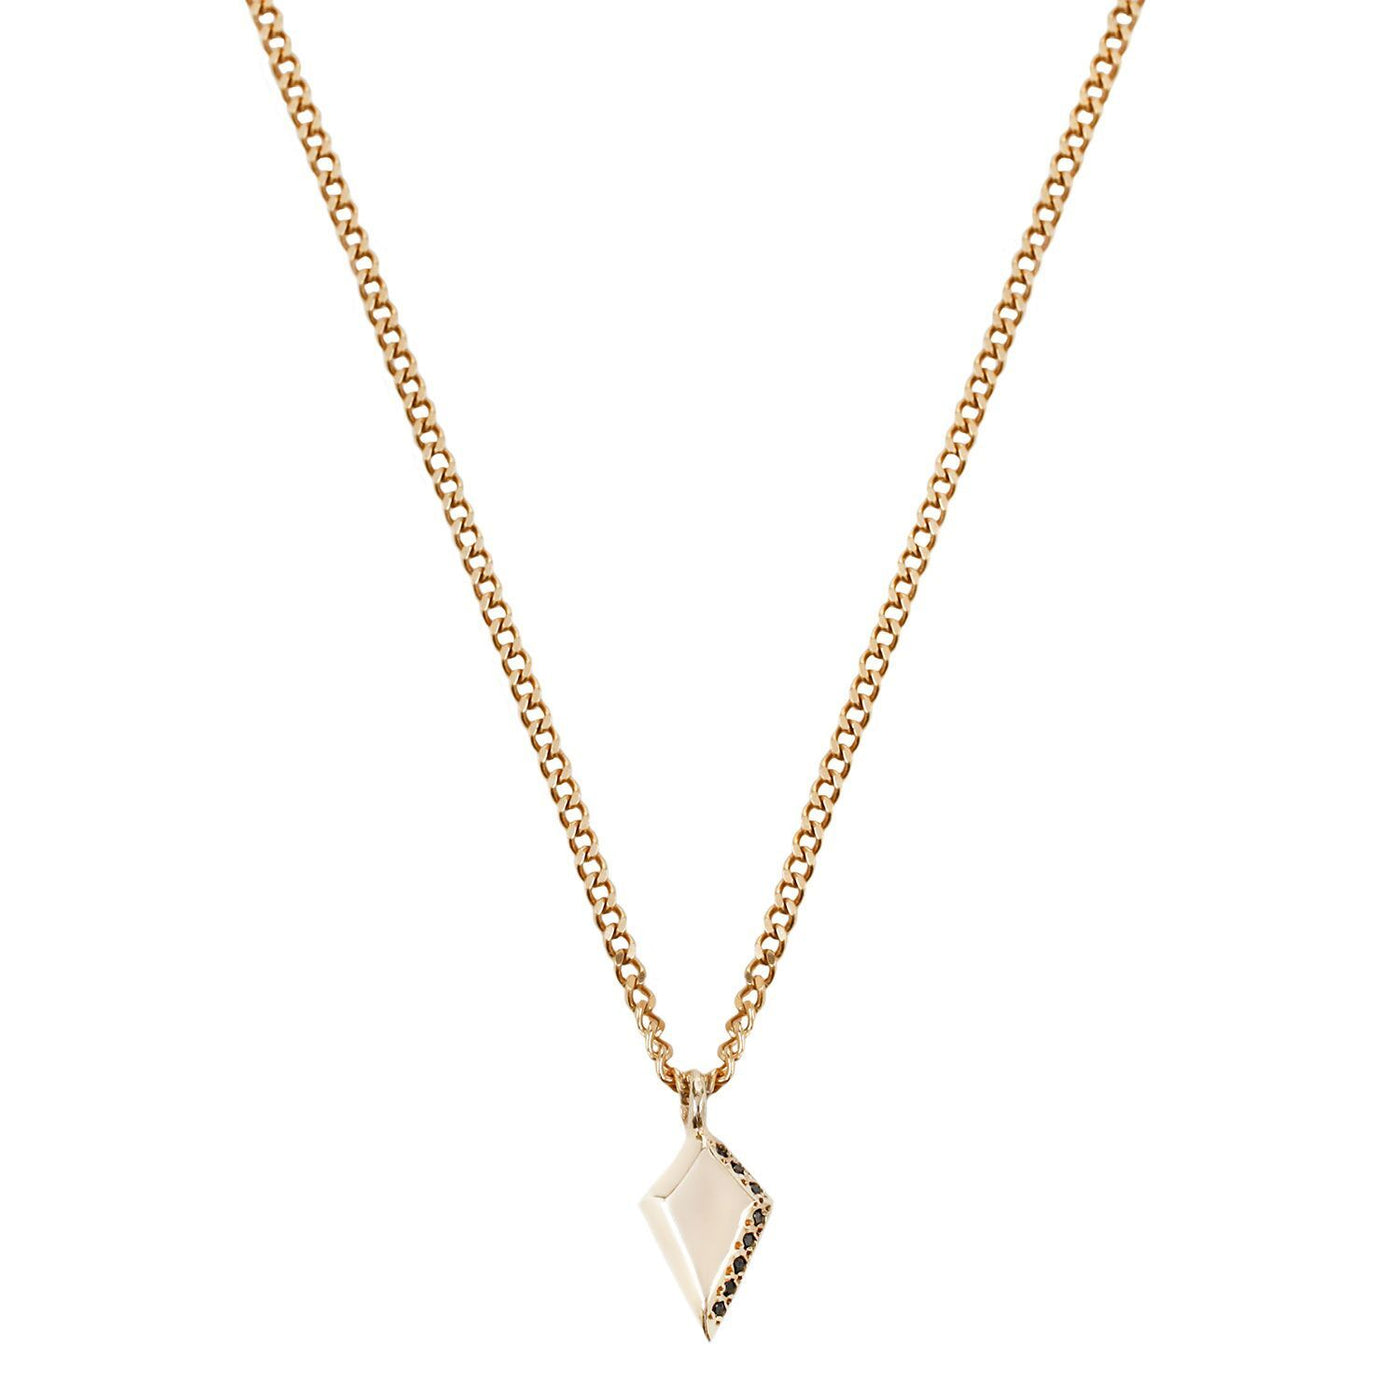 Adeline Reversible Kite Necklace